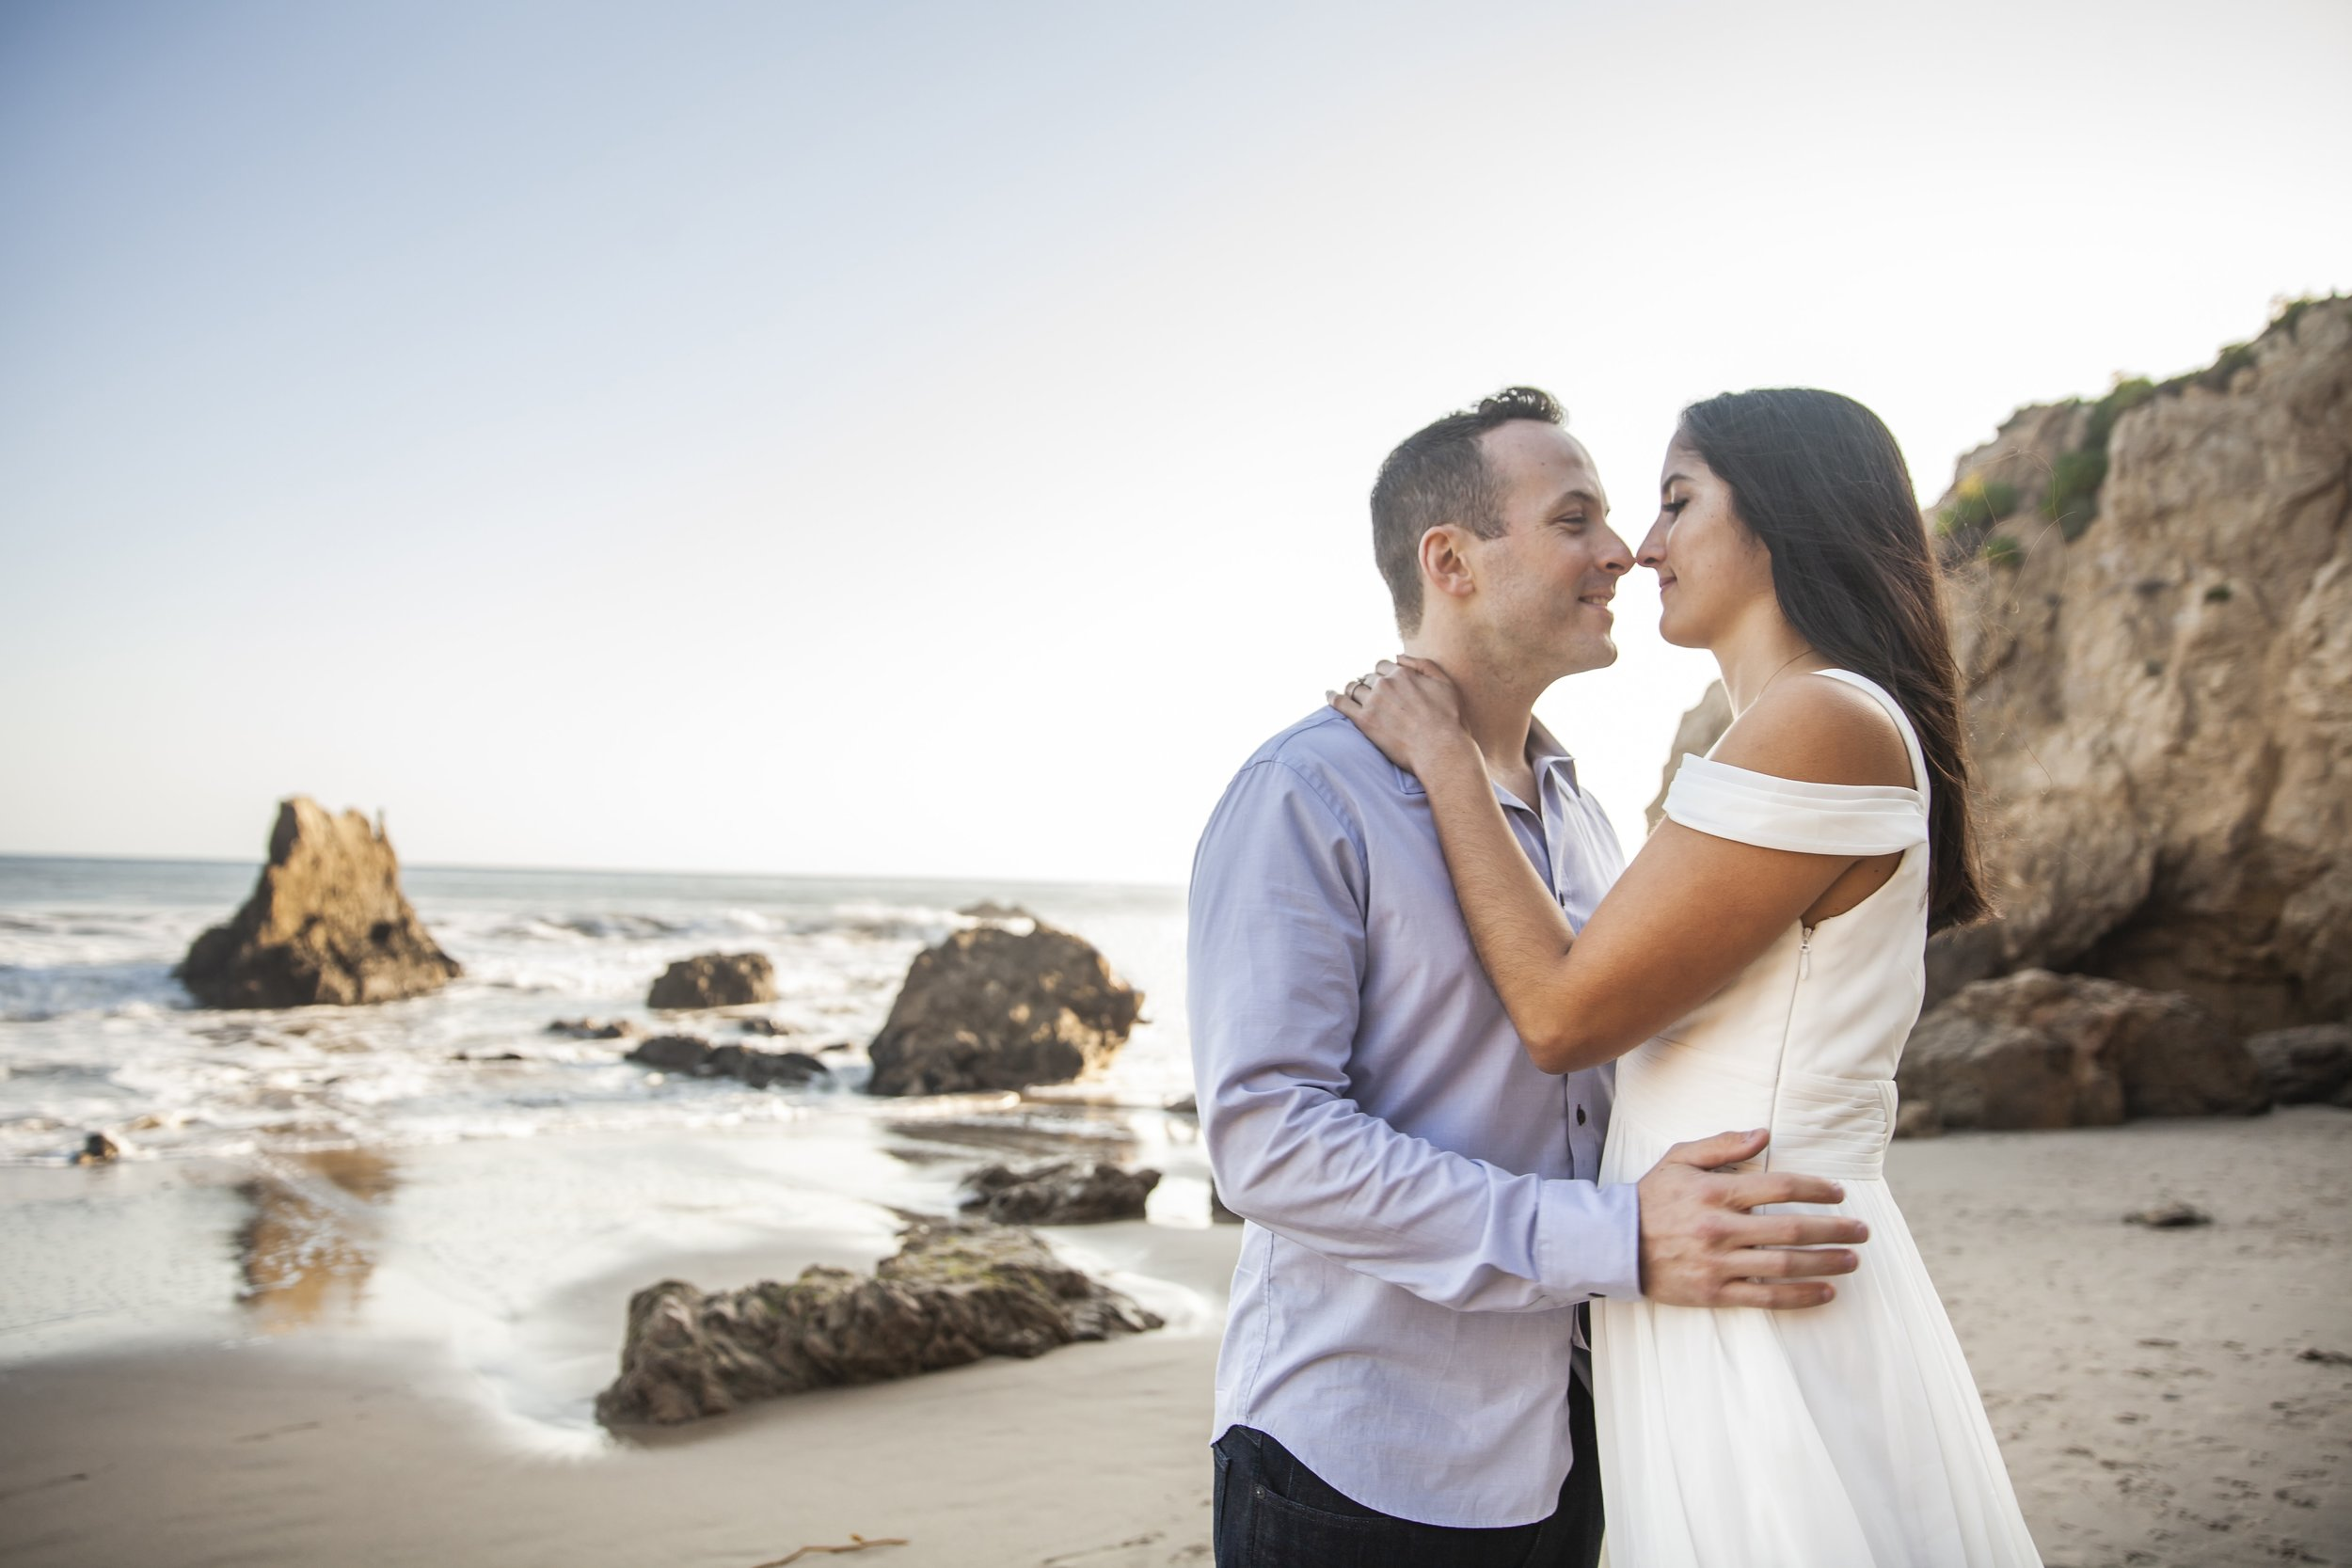 California Engagement Photography - Engaged couple leaning in for a kiss with ocean waves crashing in the background.